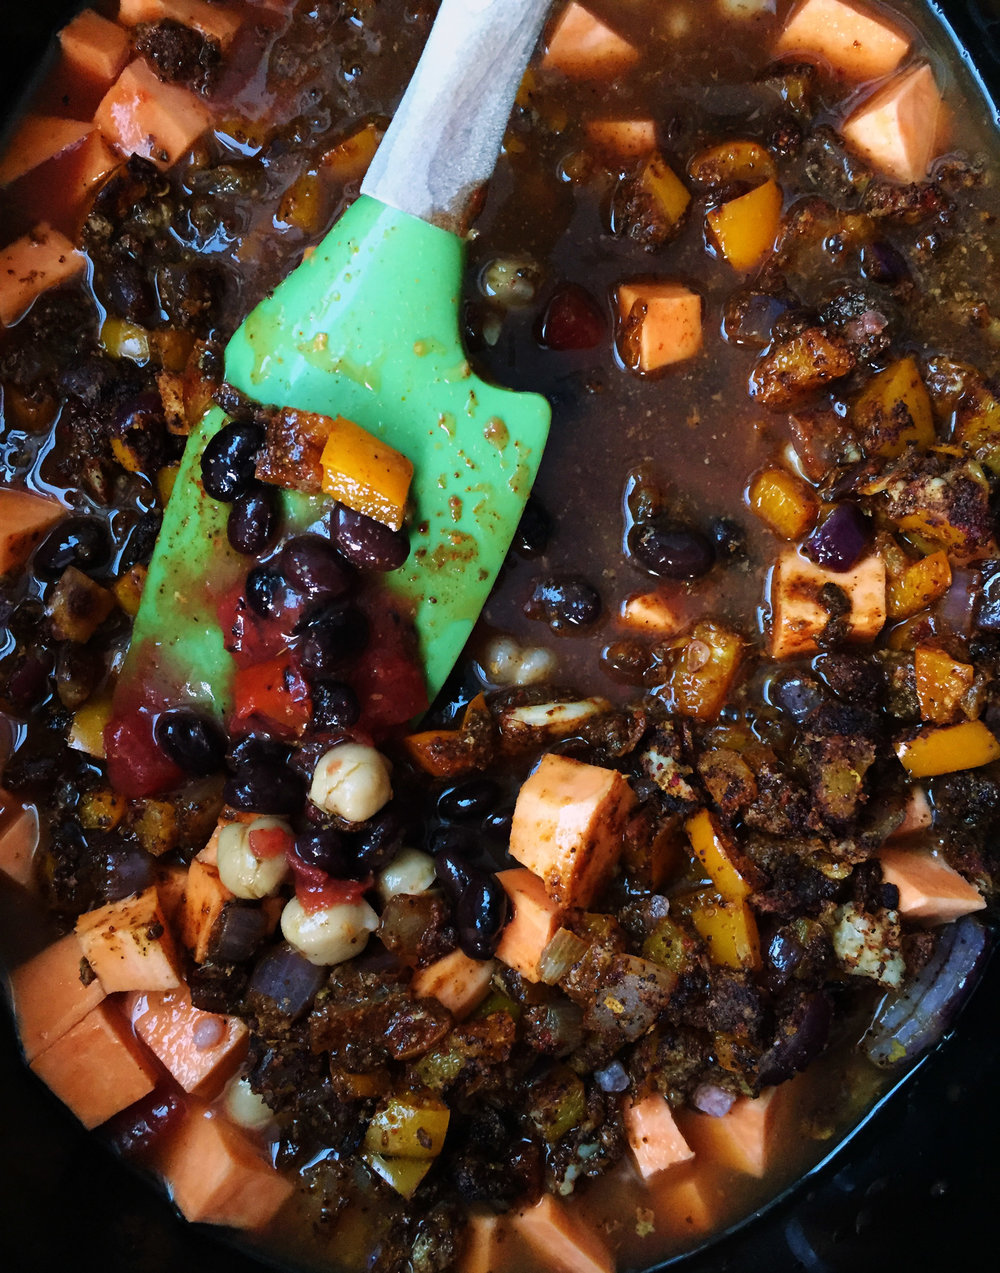 4. Mix the chili well once slow cooker is done and serve..